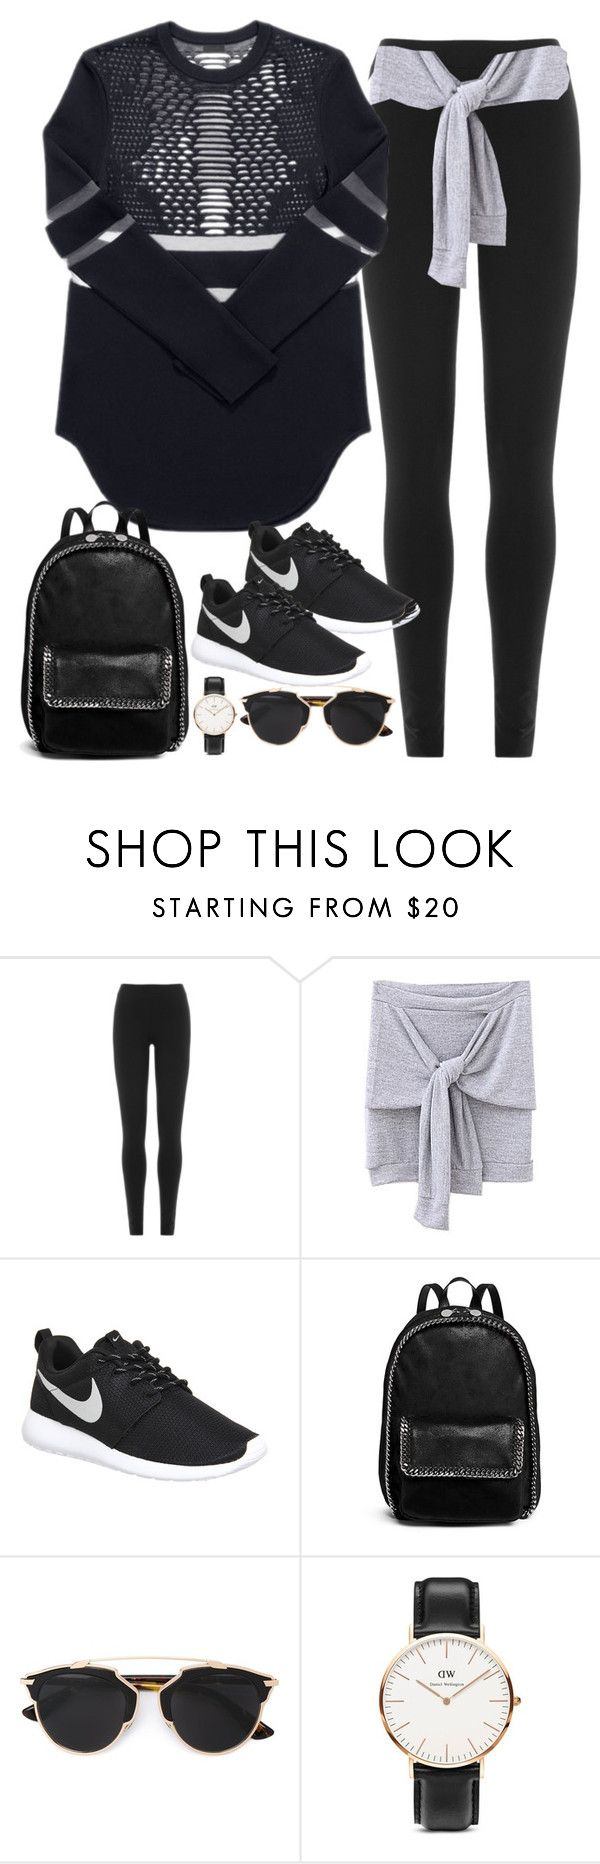 """""""Untitled#4148"""" by fashionnfacts ❤ liked on Polyvore featuring DKNY, NIKE, STELLA McCARTNEY, Christian Dior and Daniel Wellington"""